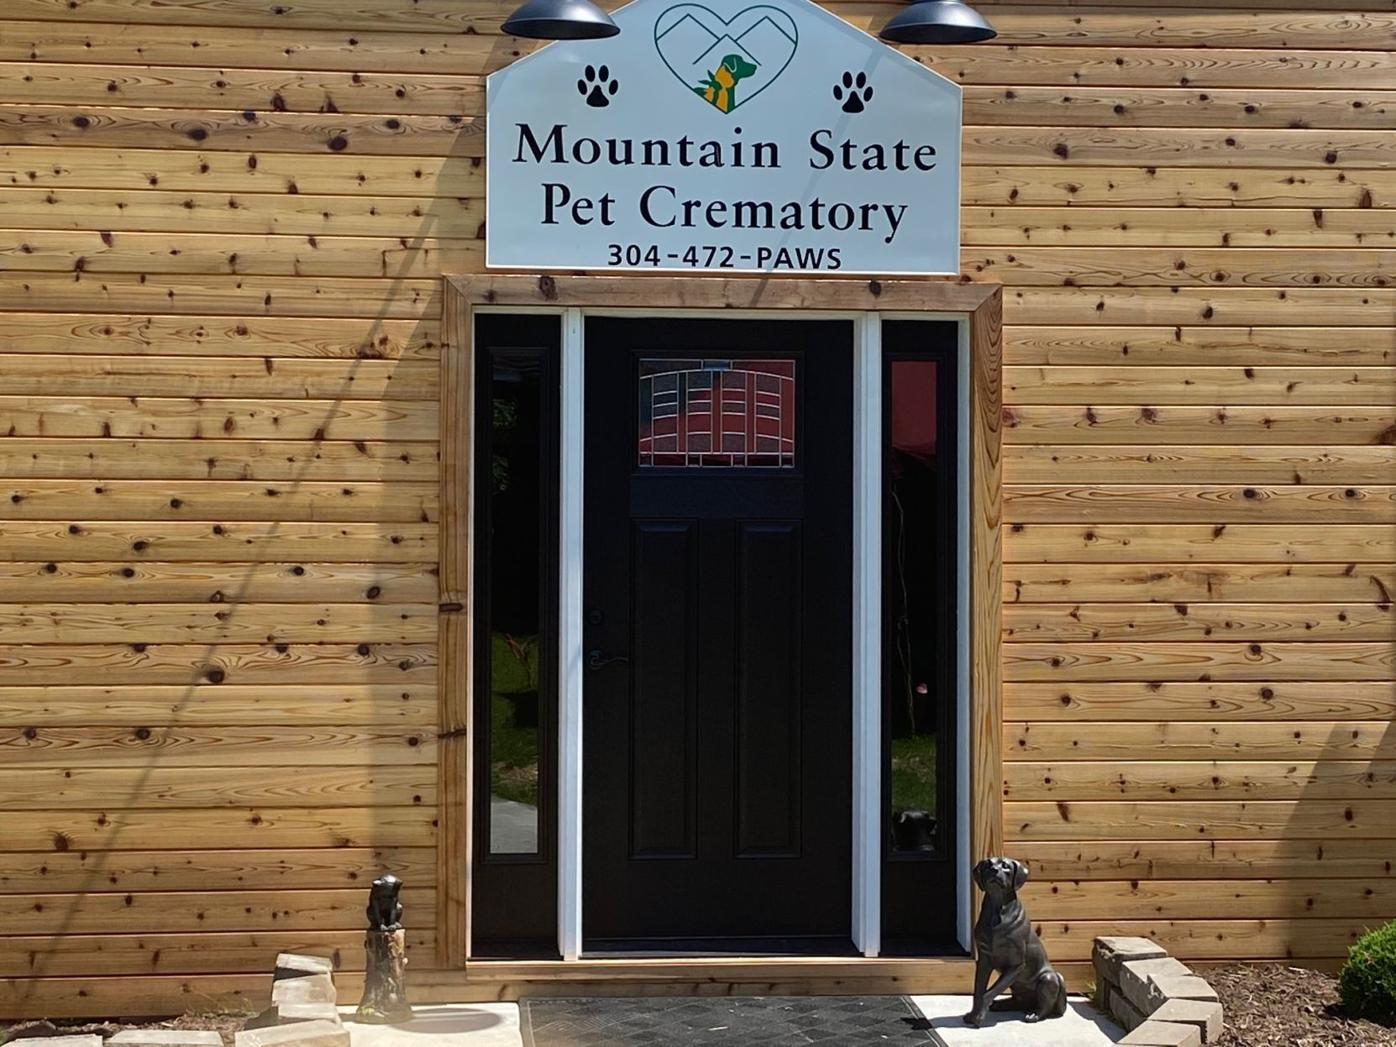 Mountain State Pet Crematory hosts open house